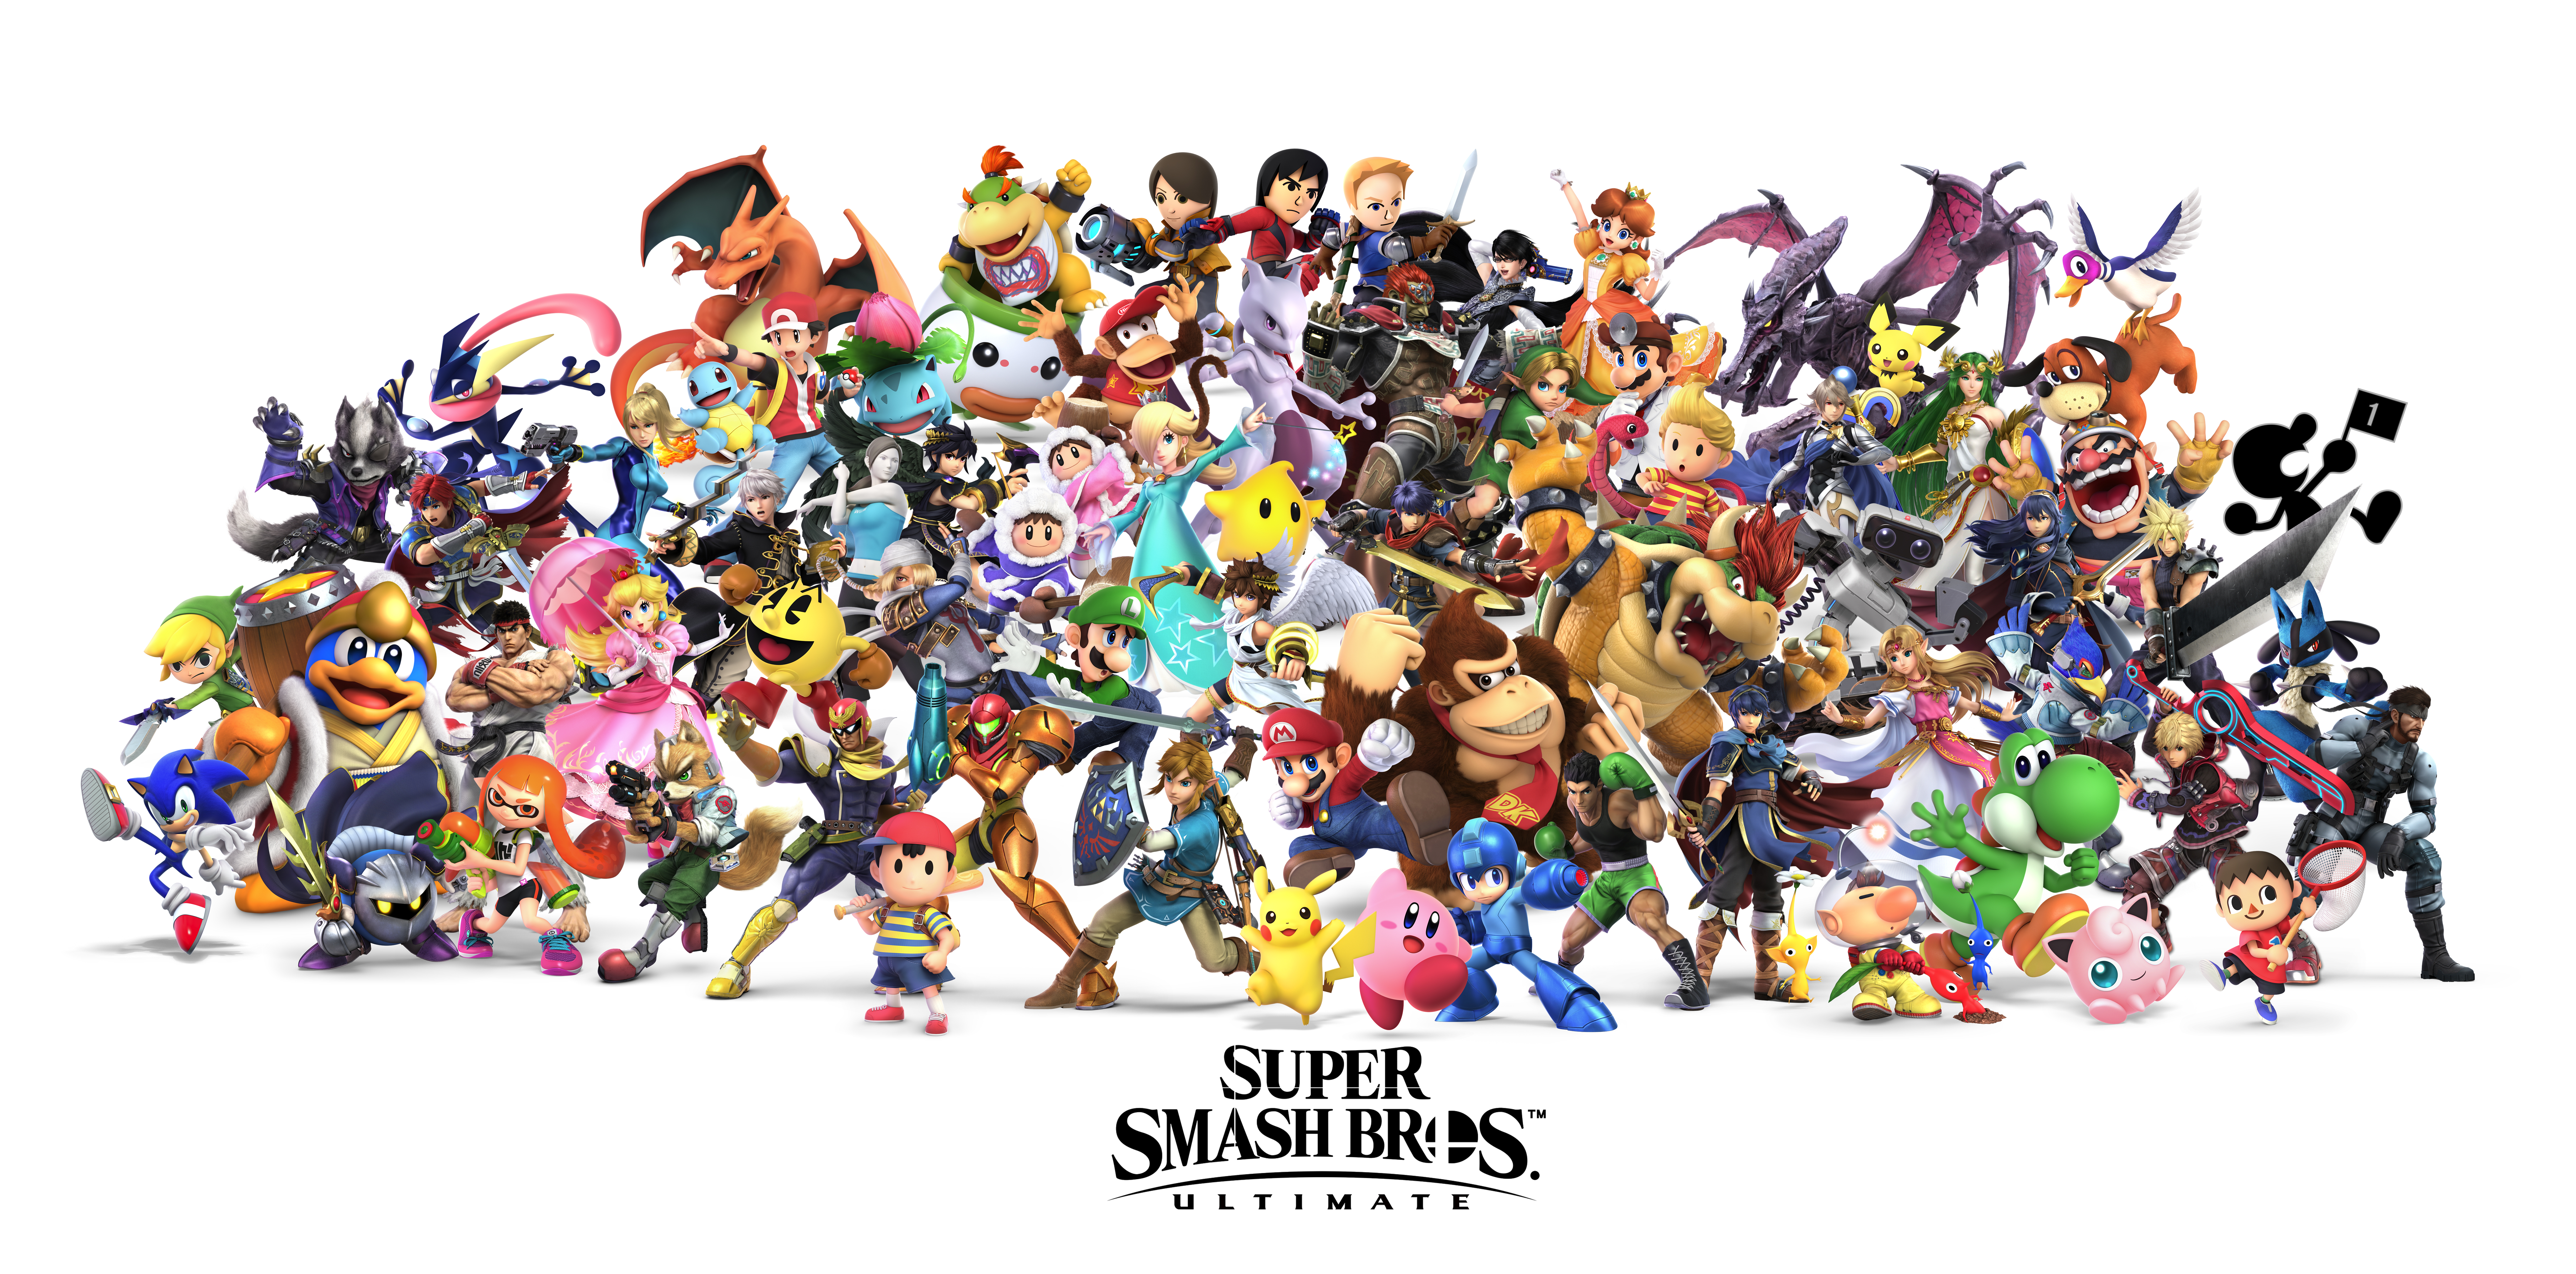 Super Smash Bros Ultimate 8k Ultra Hd Wallpaper Background